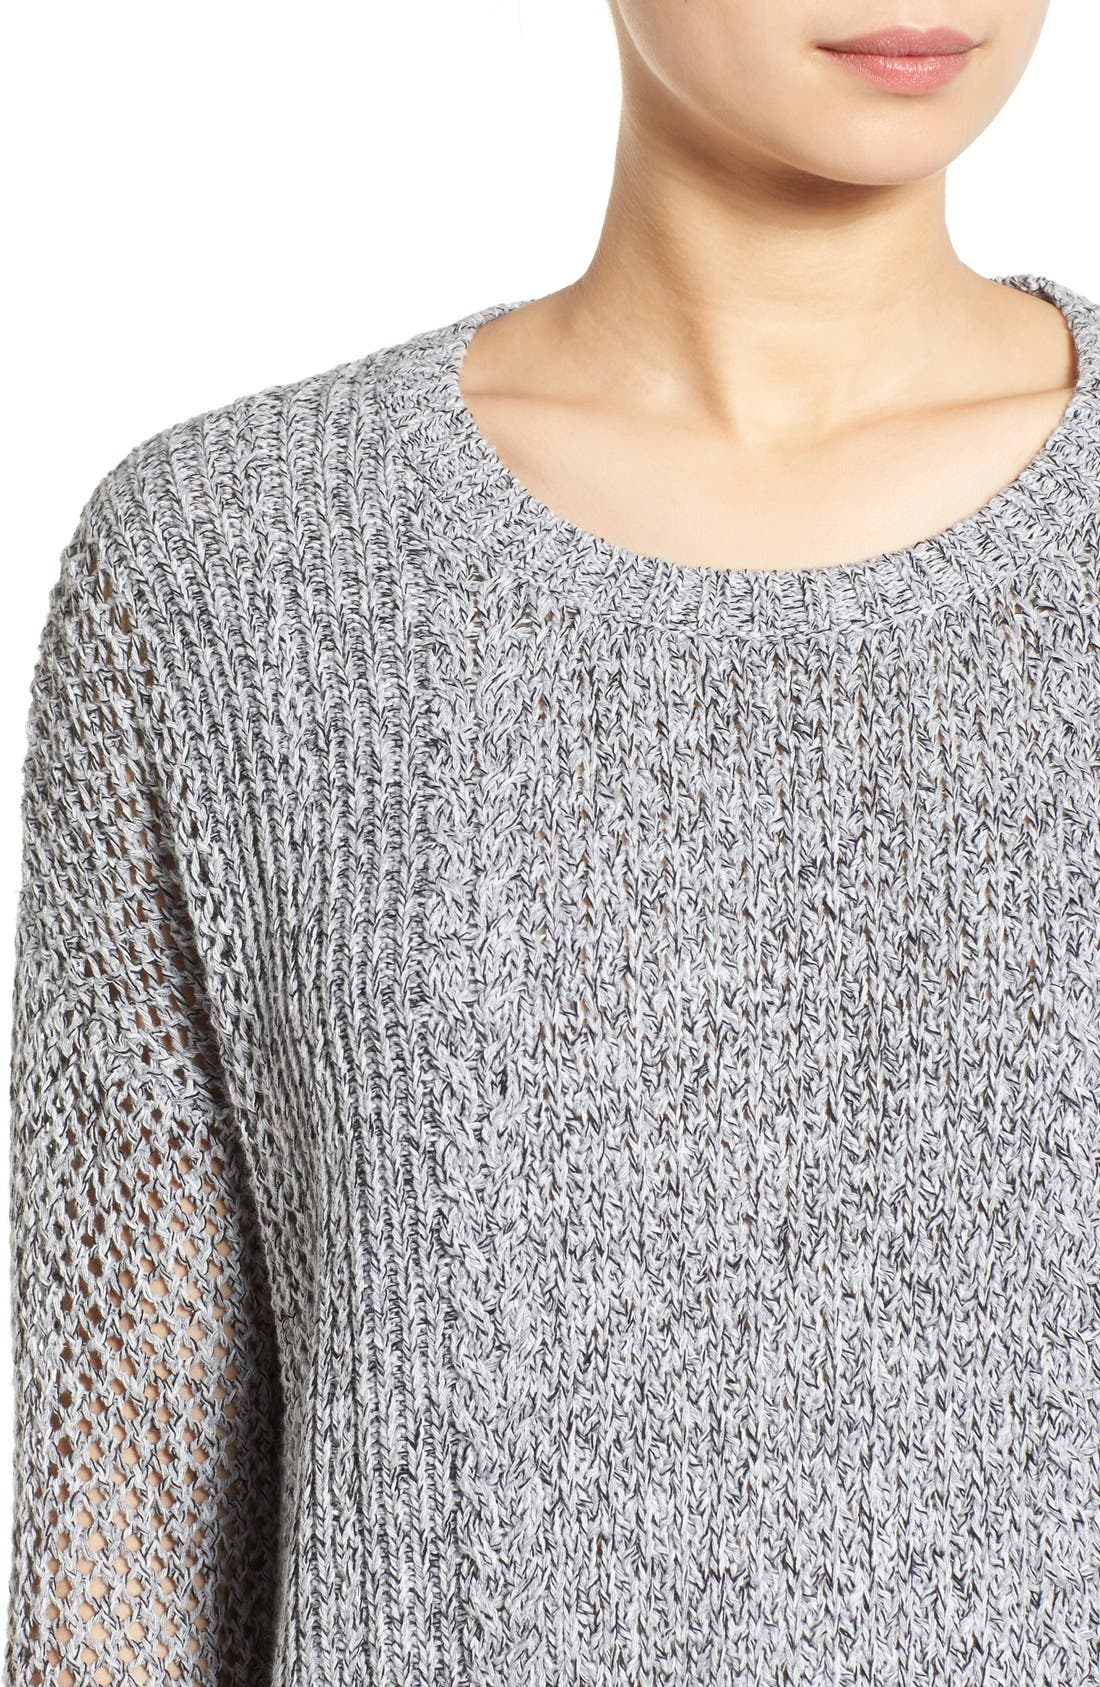 Alternate Image 4  - Madewell 'Karlie' Cable Knit Sweater